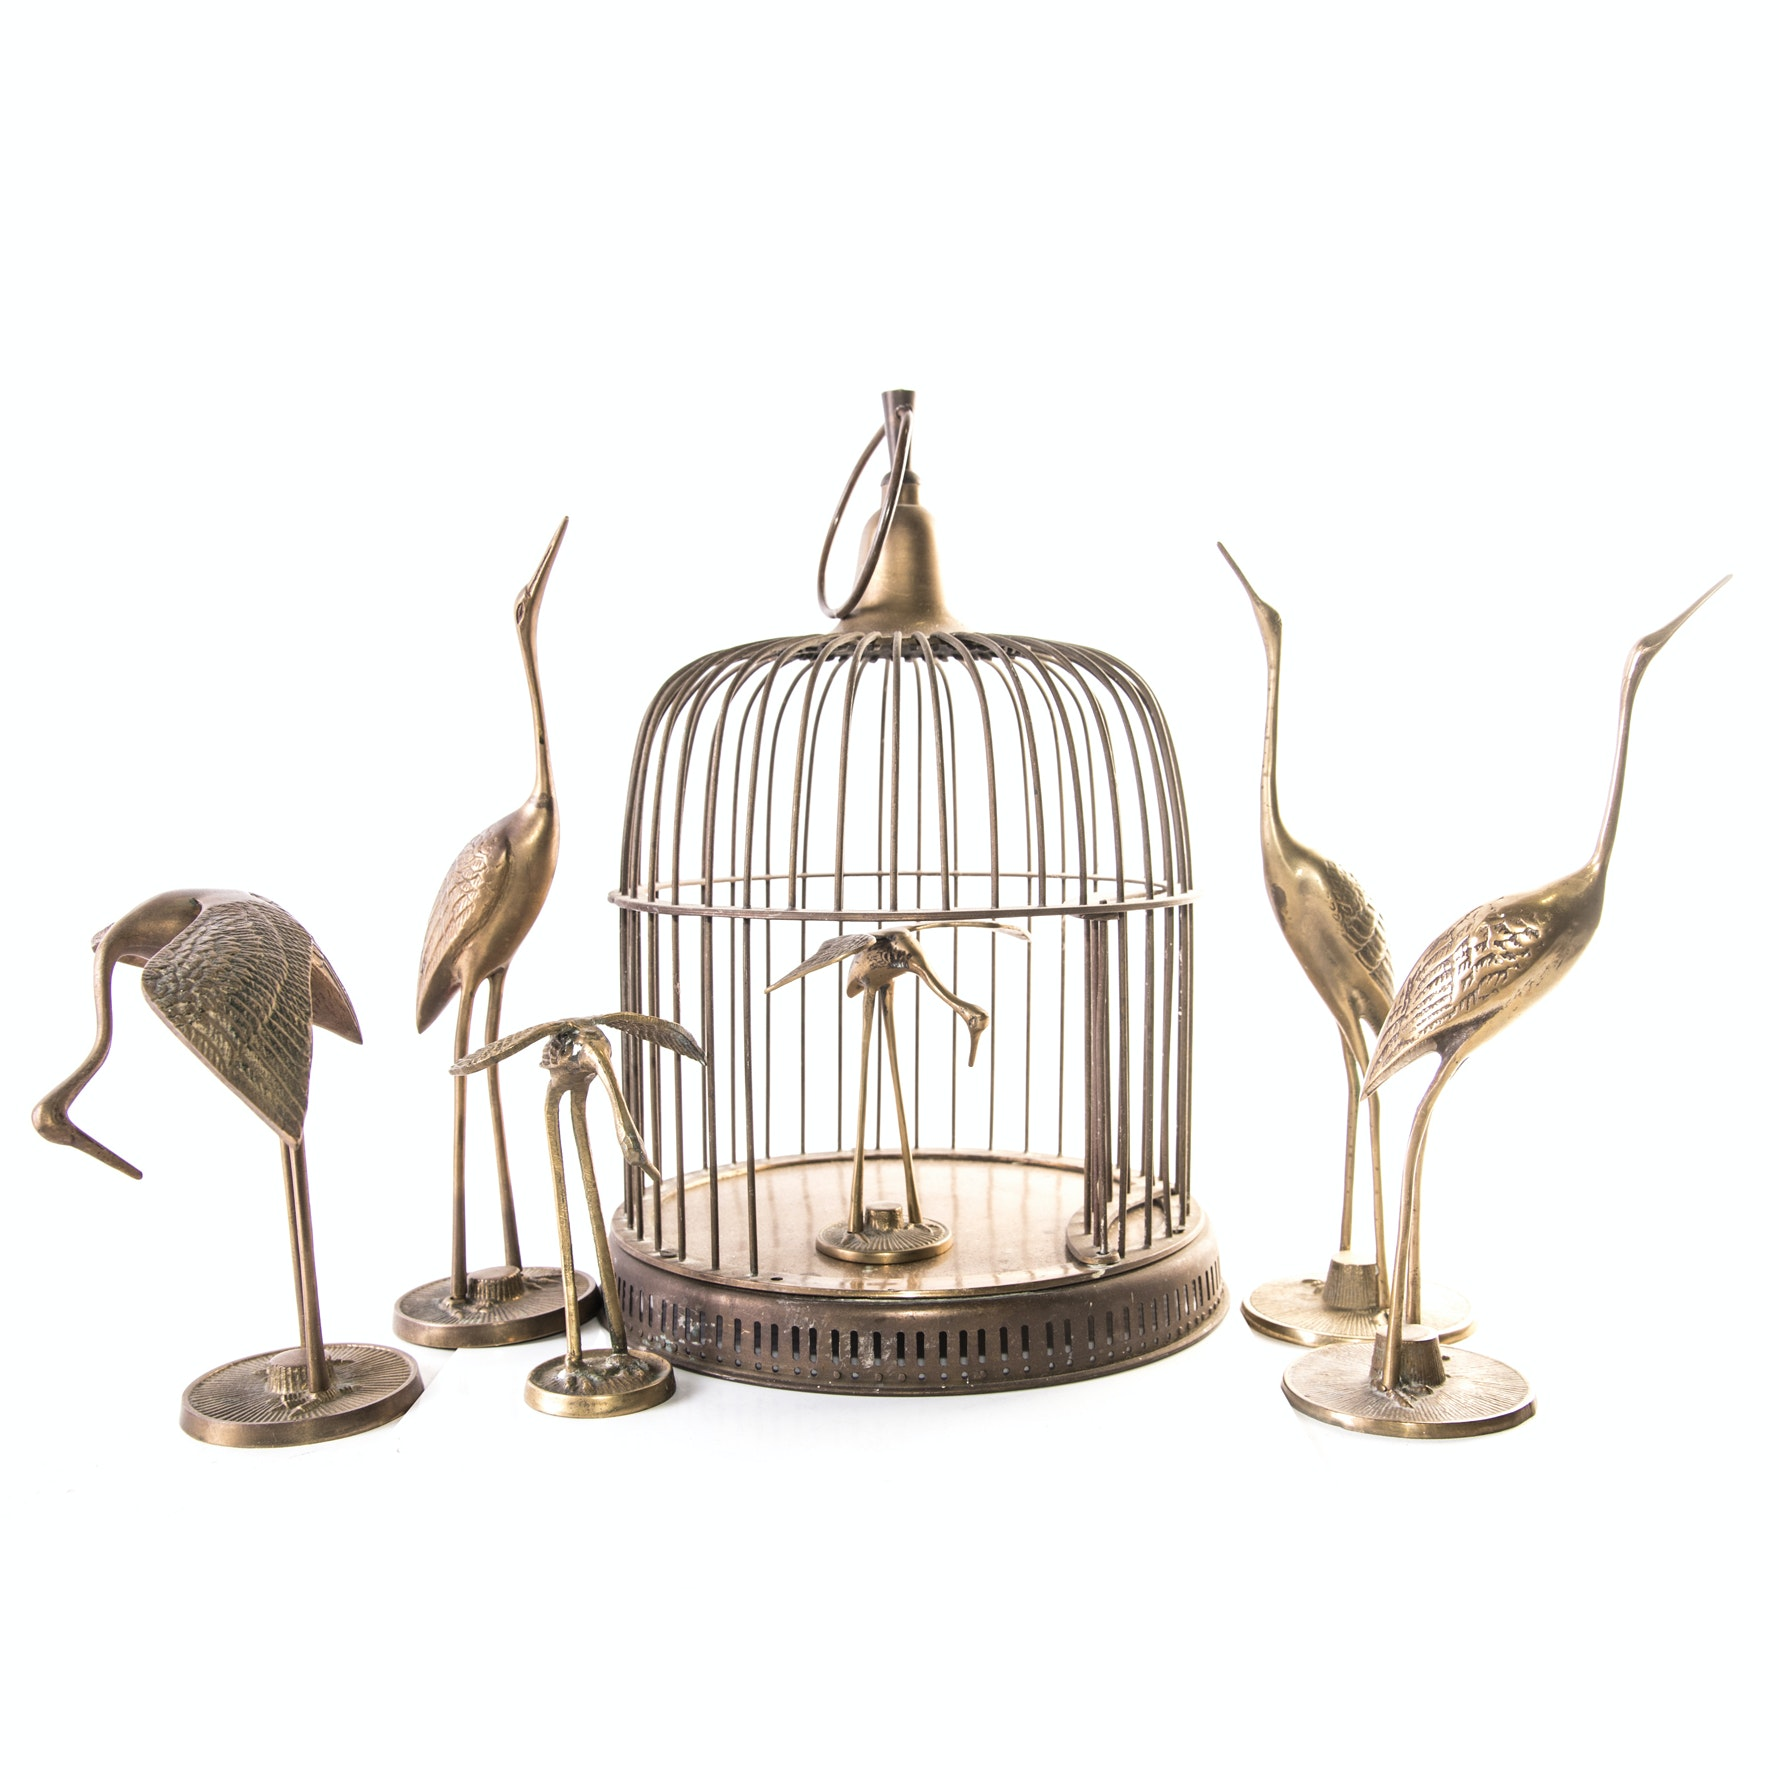 Brass Birdcage with Egret Figurines